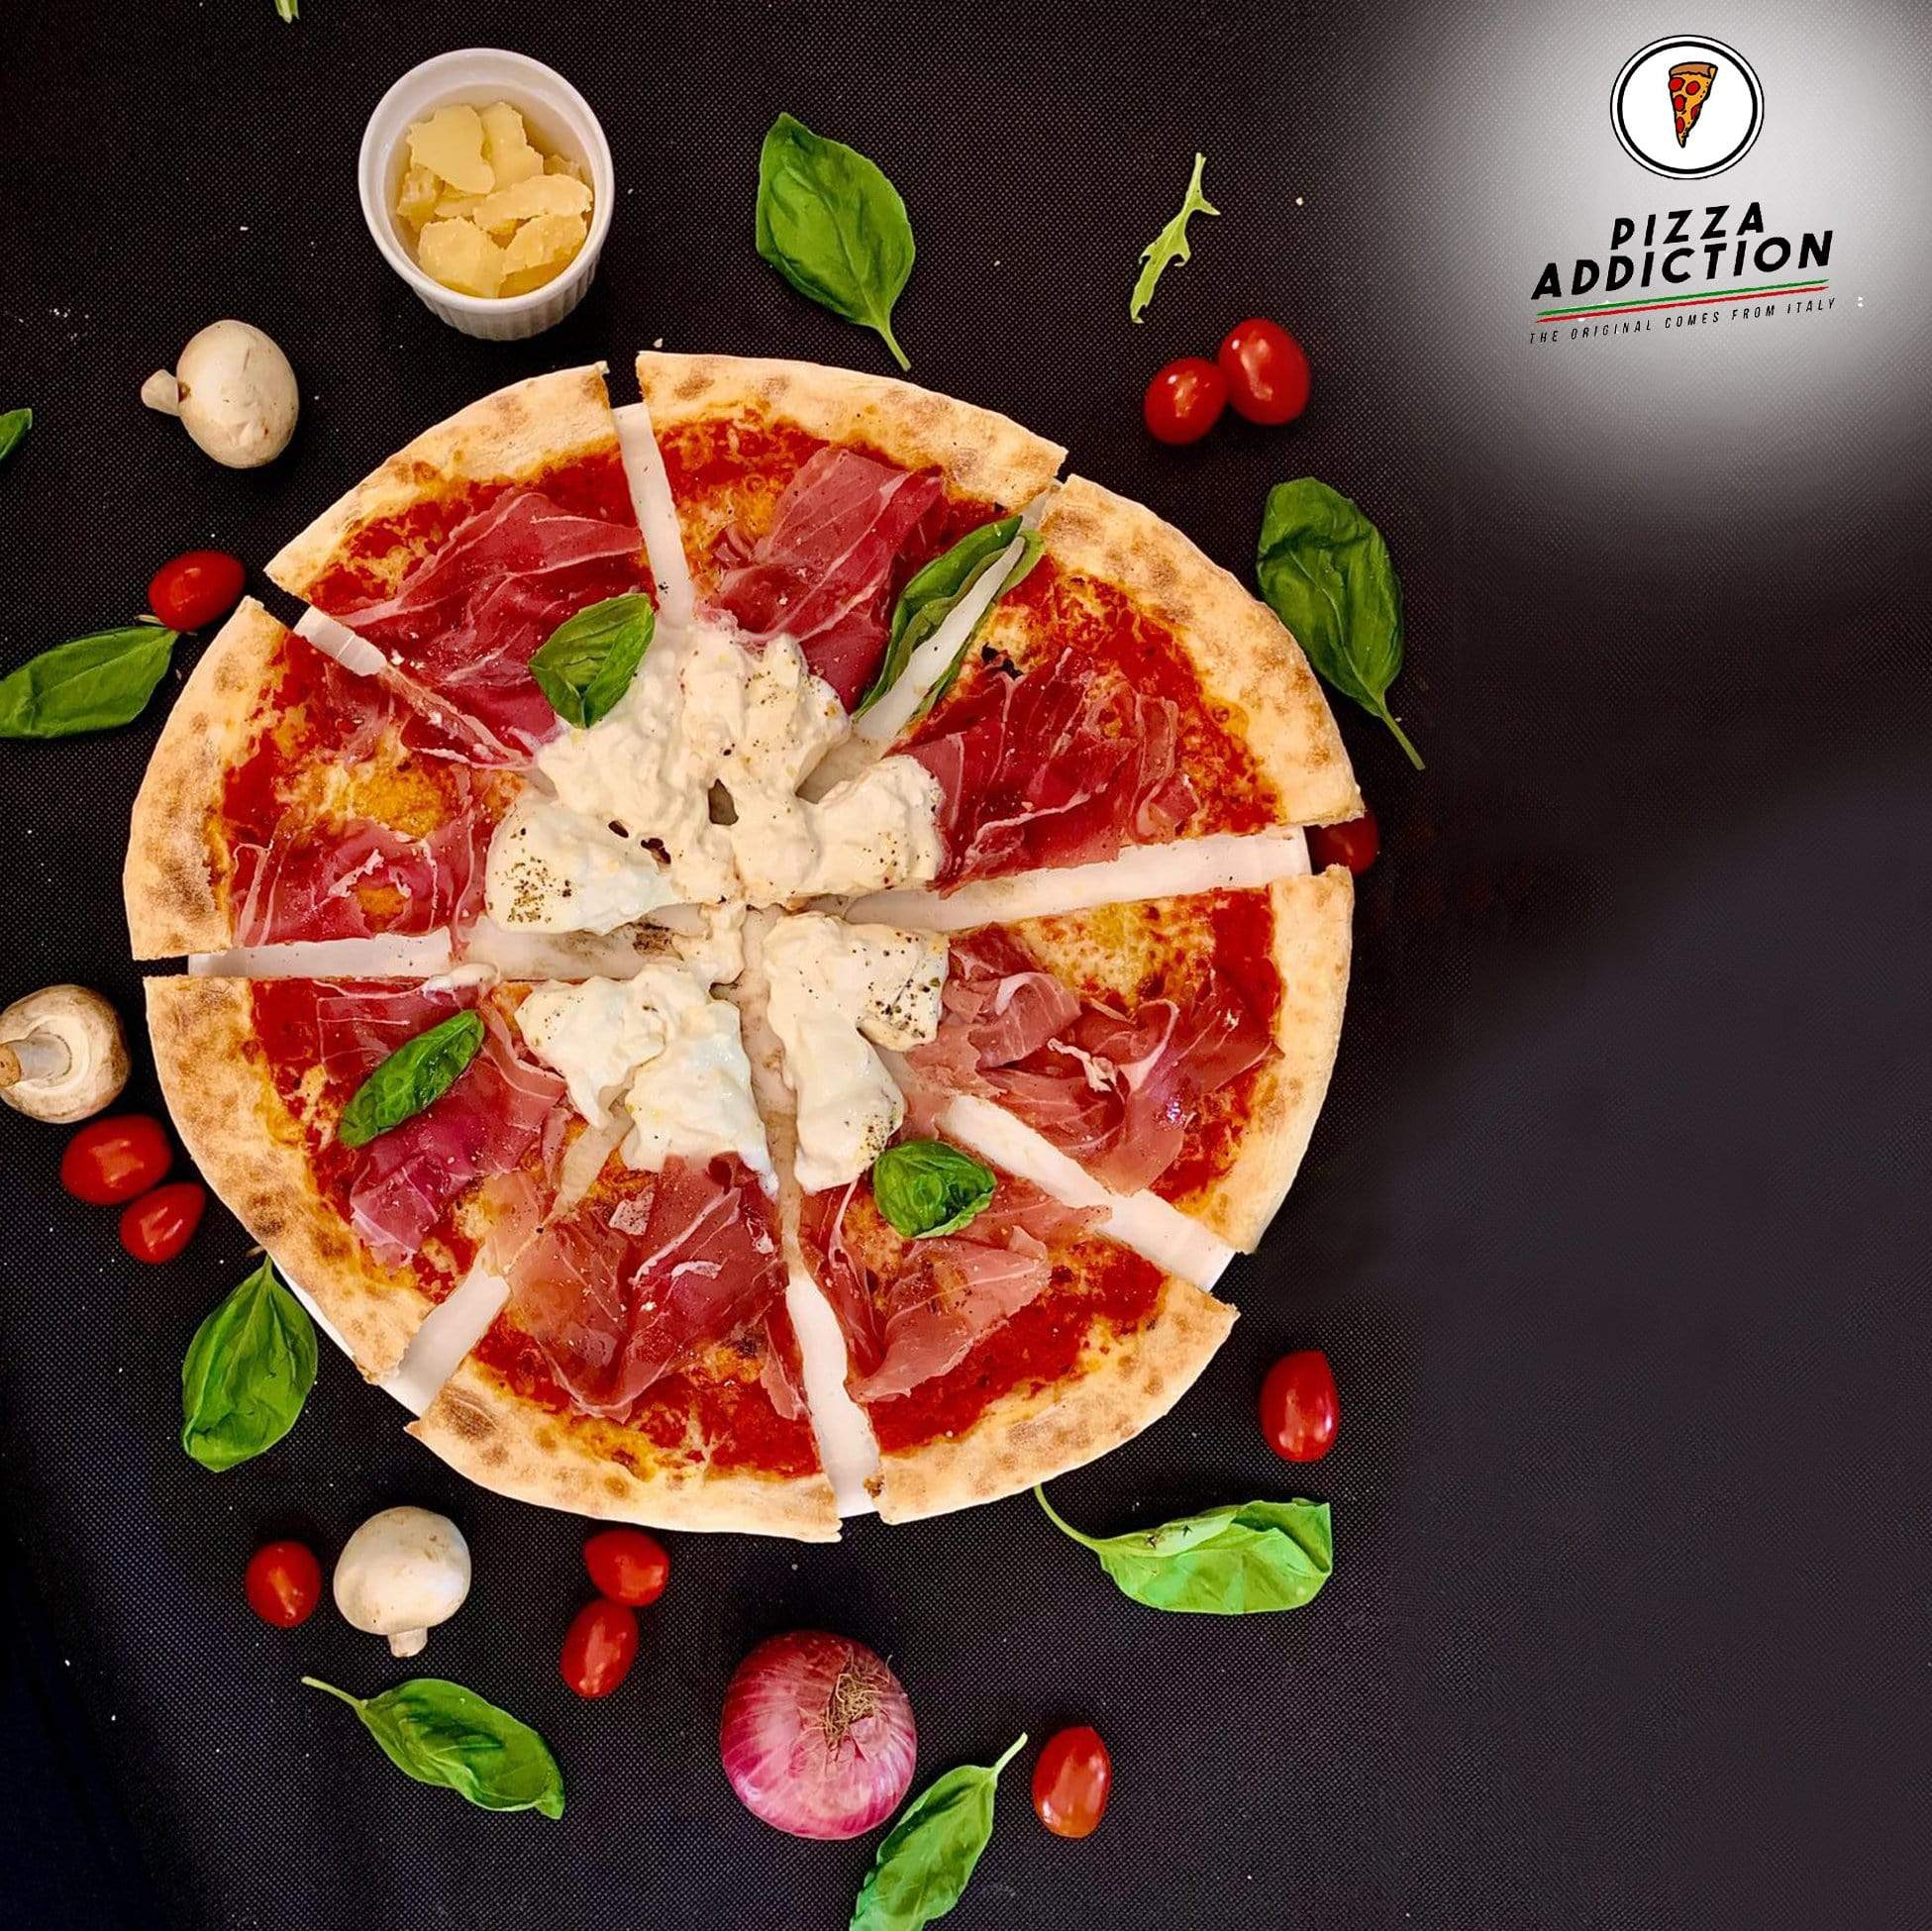 Pizza Addiction Authentic Pizza Delivery Bundle Spicy Salami Pizza / 4 Cheese Pizza and Burrata Cheese Lover Set